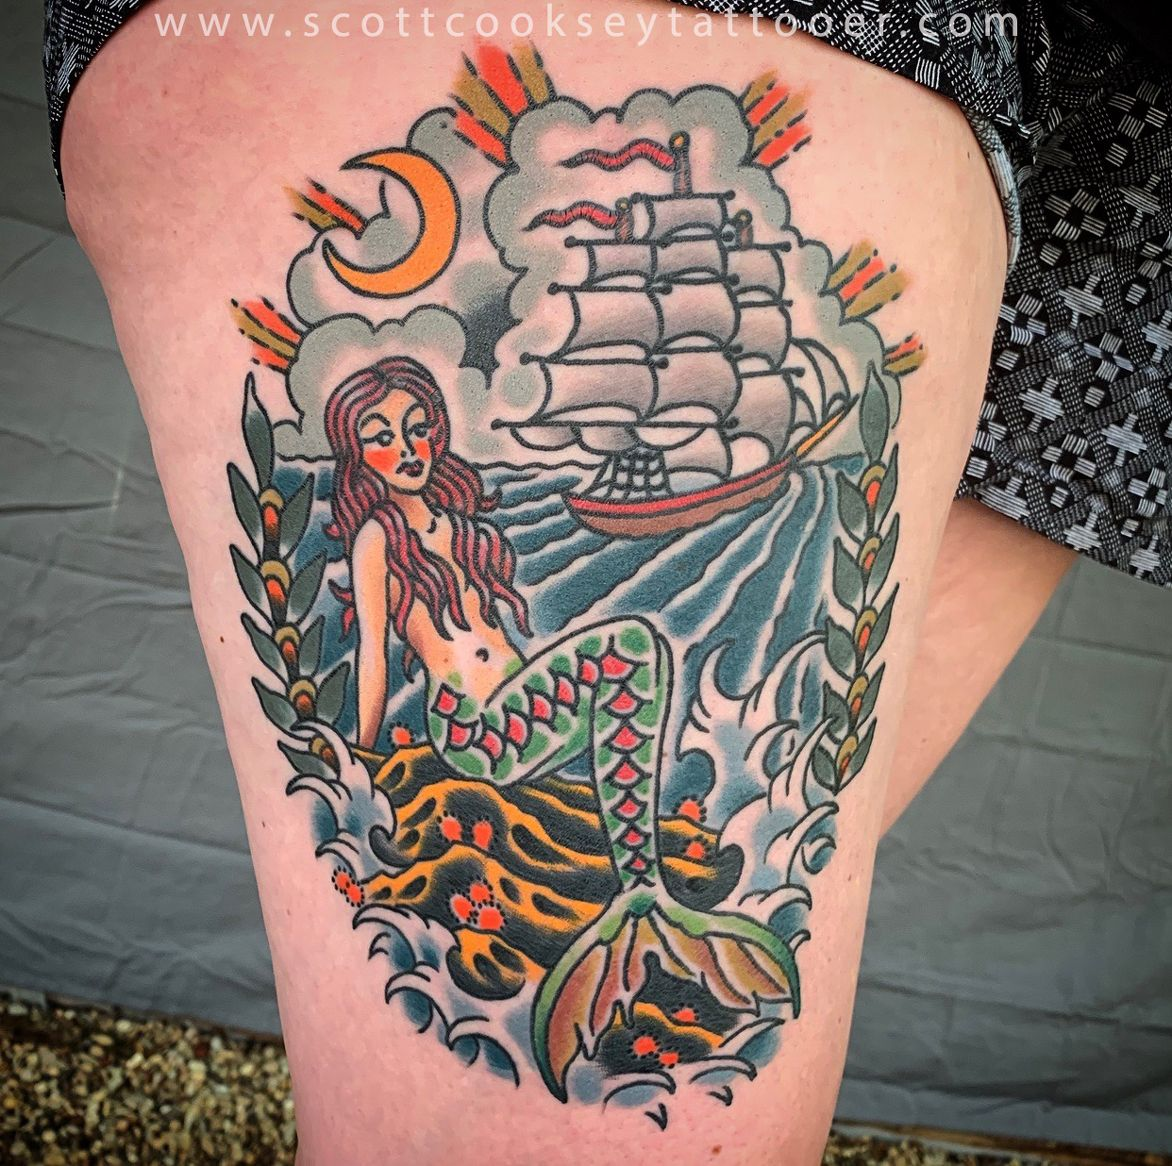 Cooksey used american traditional tattoo imagery to create